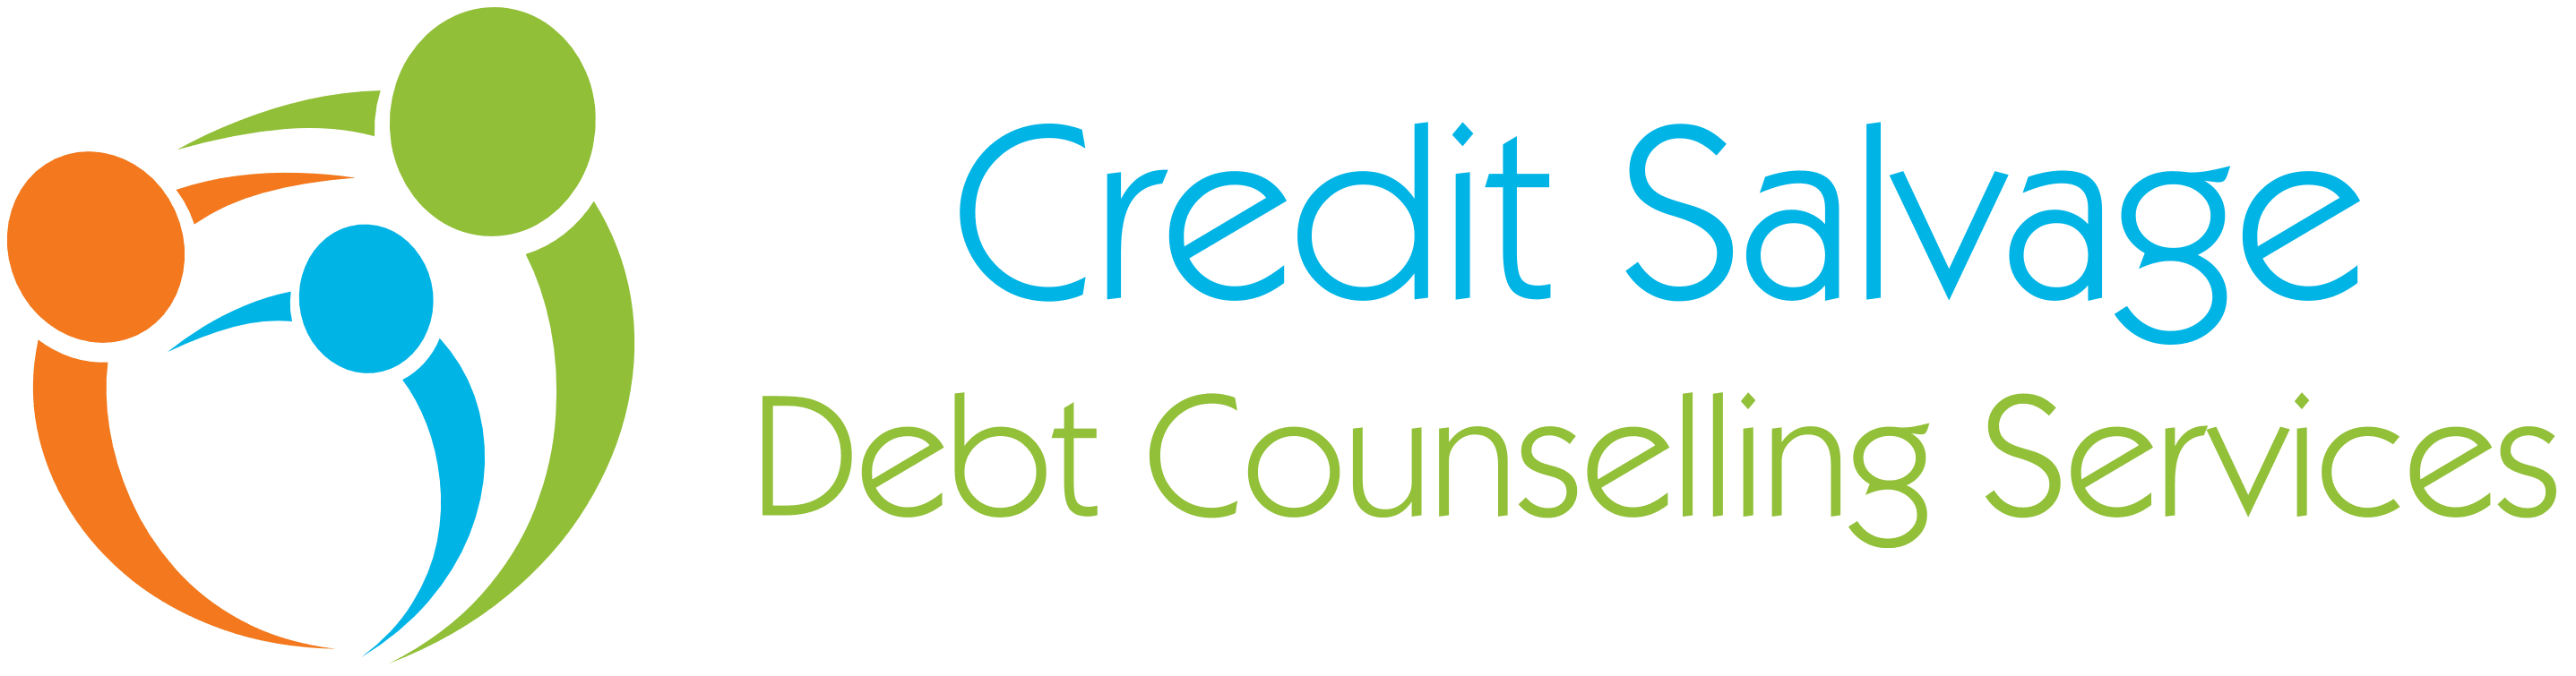 Credit Salvage Debt Counselling Services